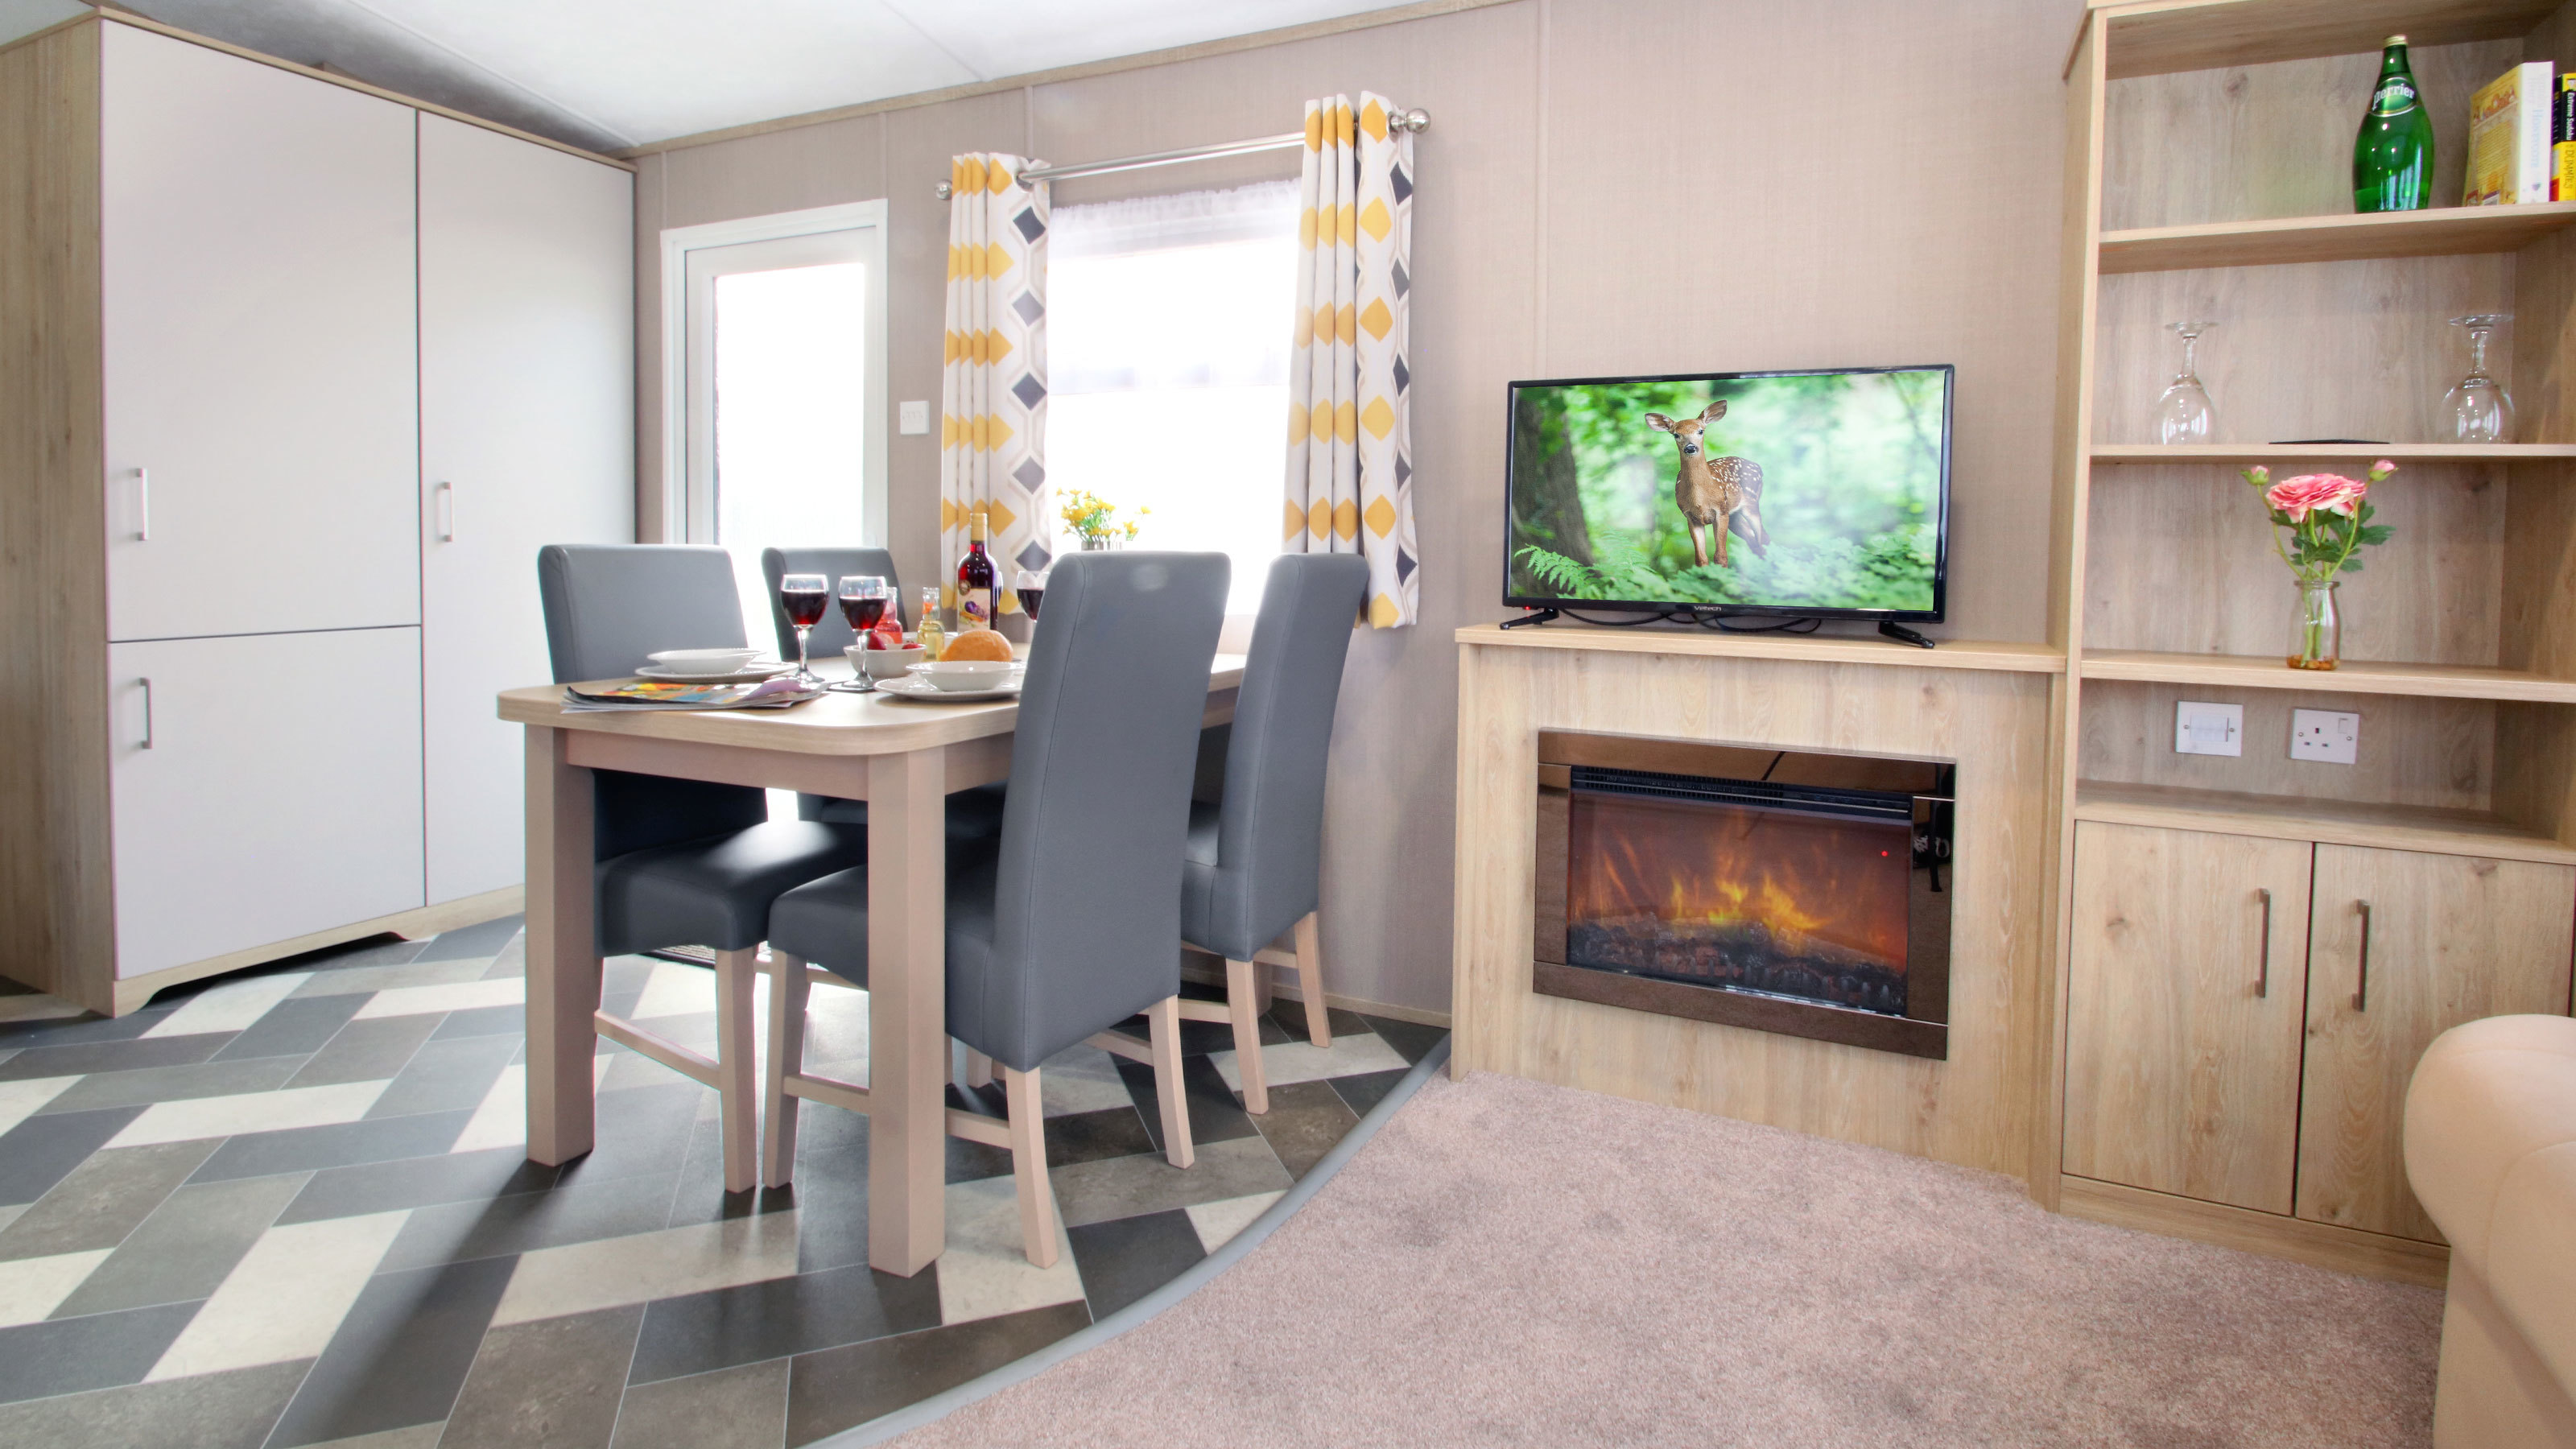 Oakdene-Statement-caravan-lounge-and-dining-area-new-for-2020